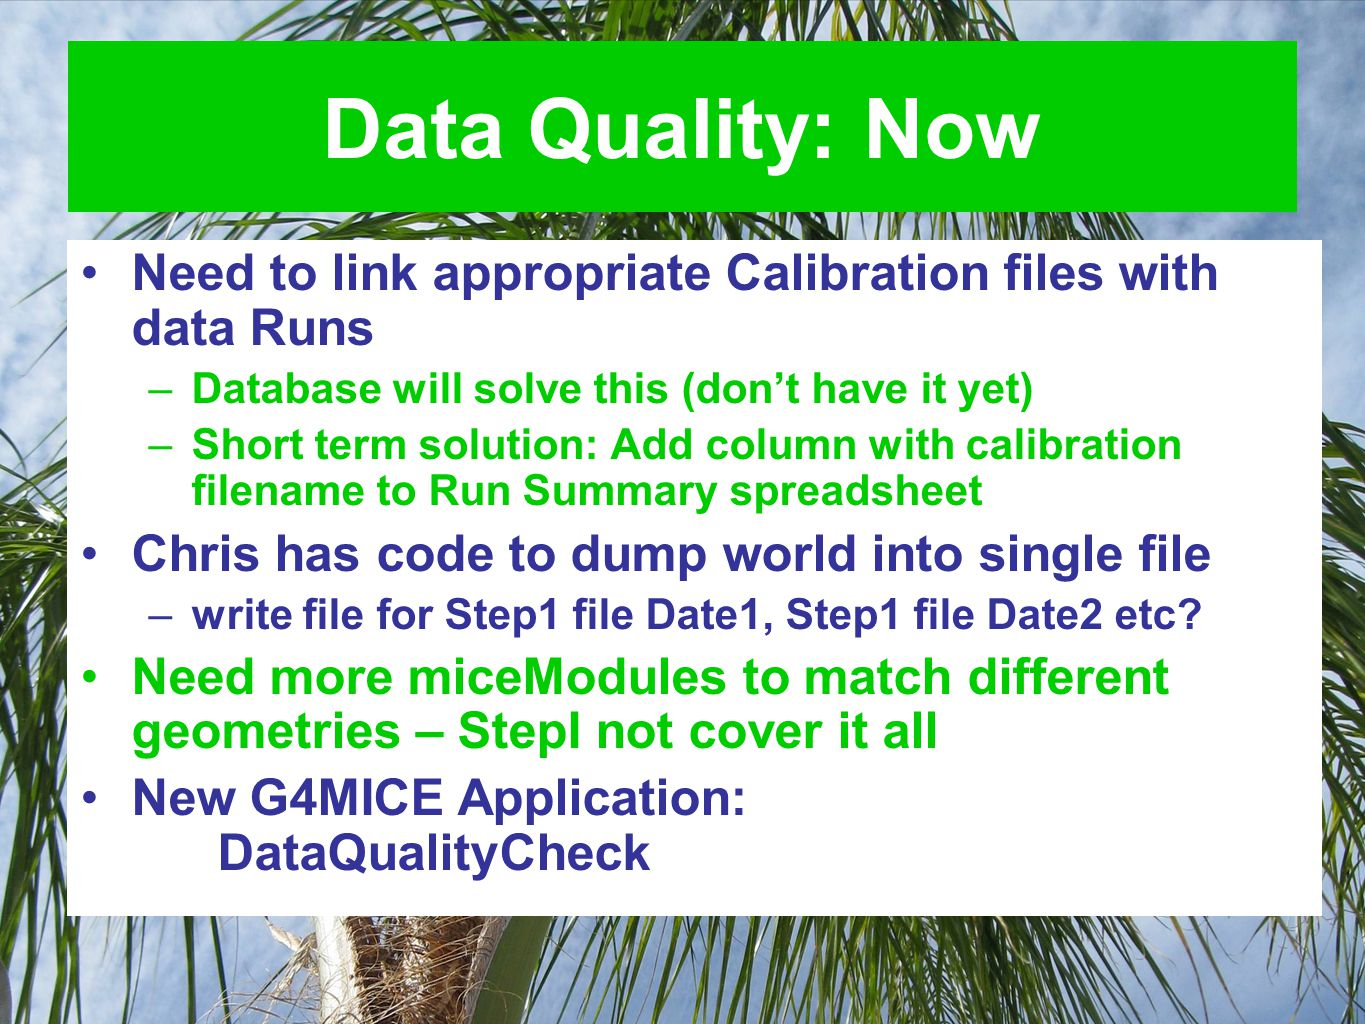 Data Quality: Now Need to link appropriate Calibration files with data Runs –Database will solve this (don't have it yet) –Short term solution: Add column with calibration filename to Run Summary spreadsheet Chris has code to dump world into single file –write file for Step1 file Date1, Step1 file Date2 etc.